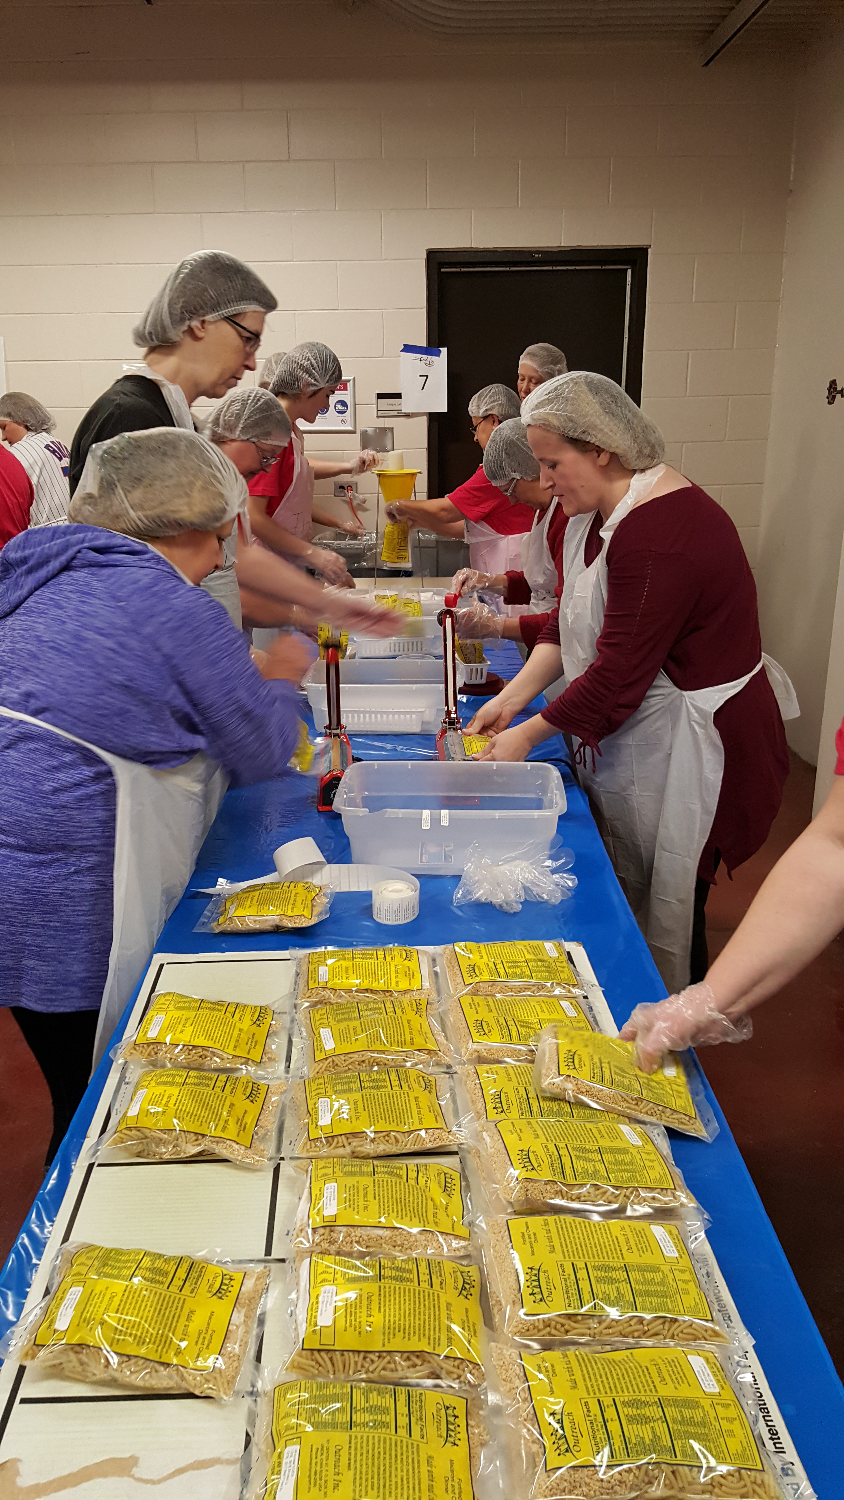 Meal Packing at UL - Dec. 5, 2015